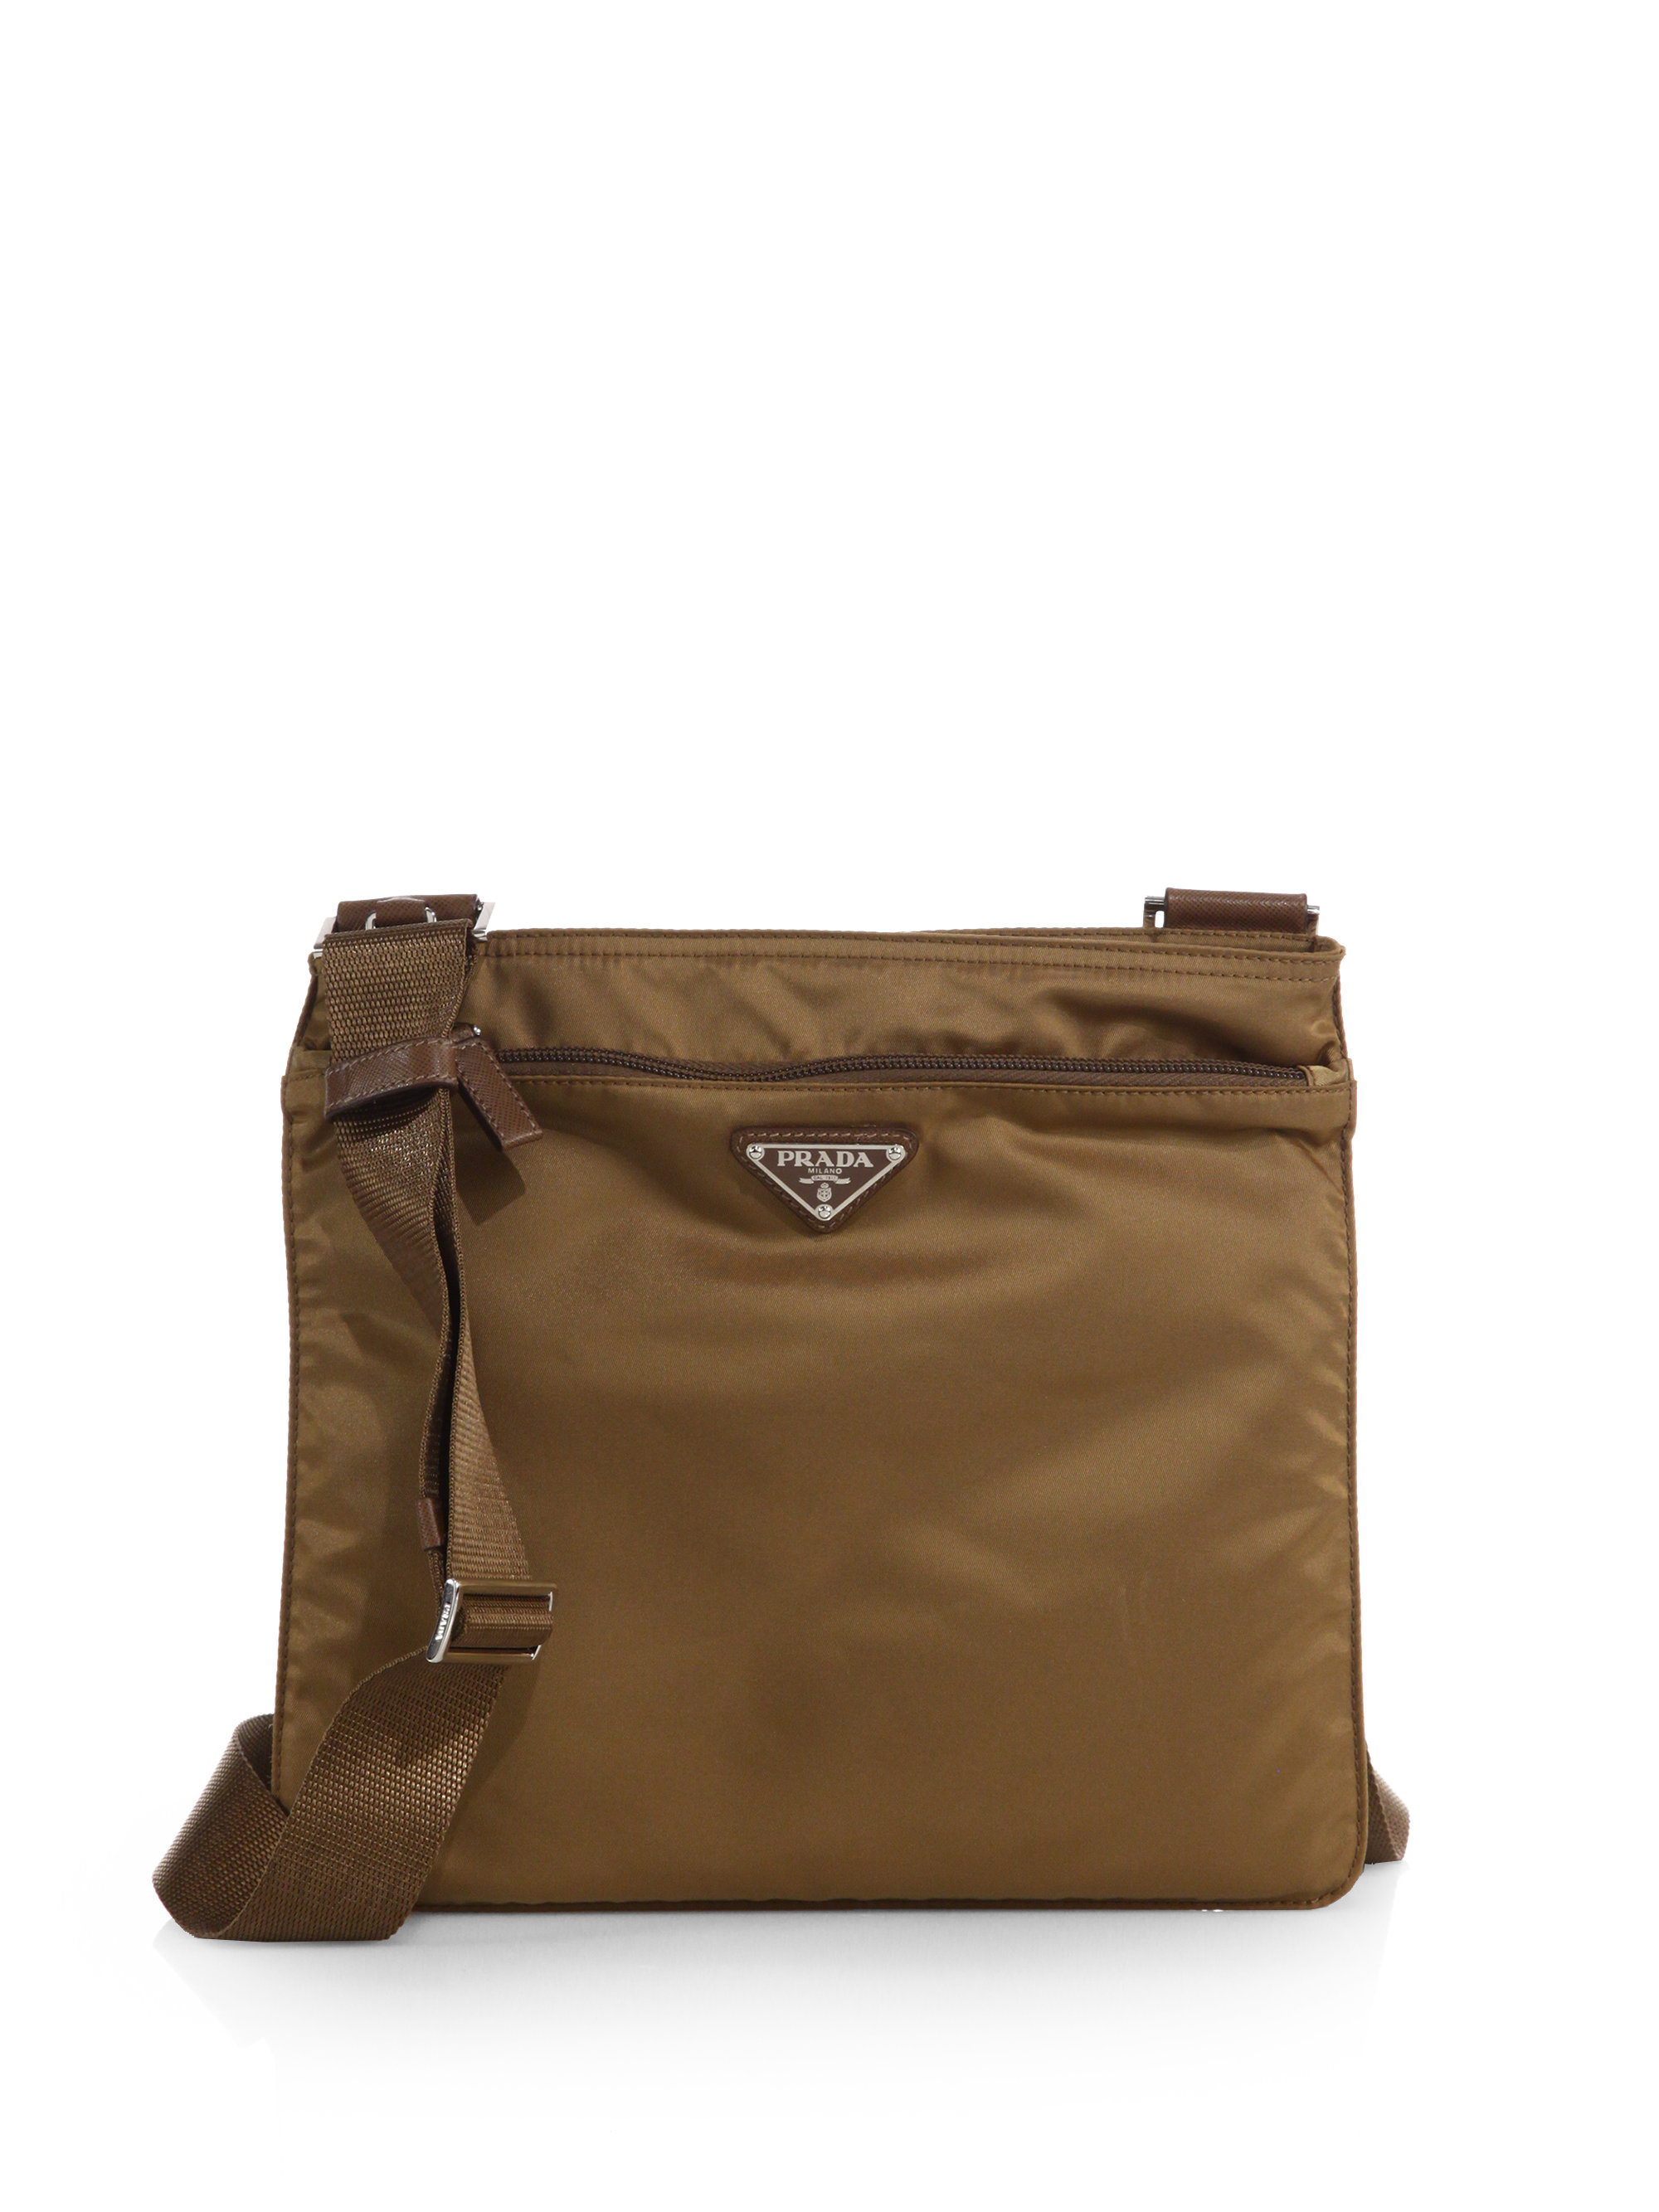 Prada Crossbody Bag Sale Buy Prada Bags Online